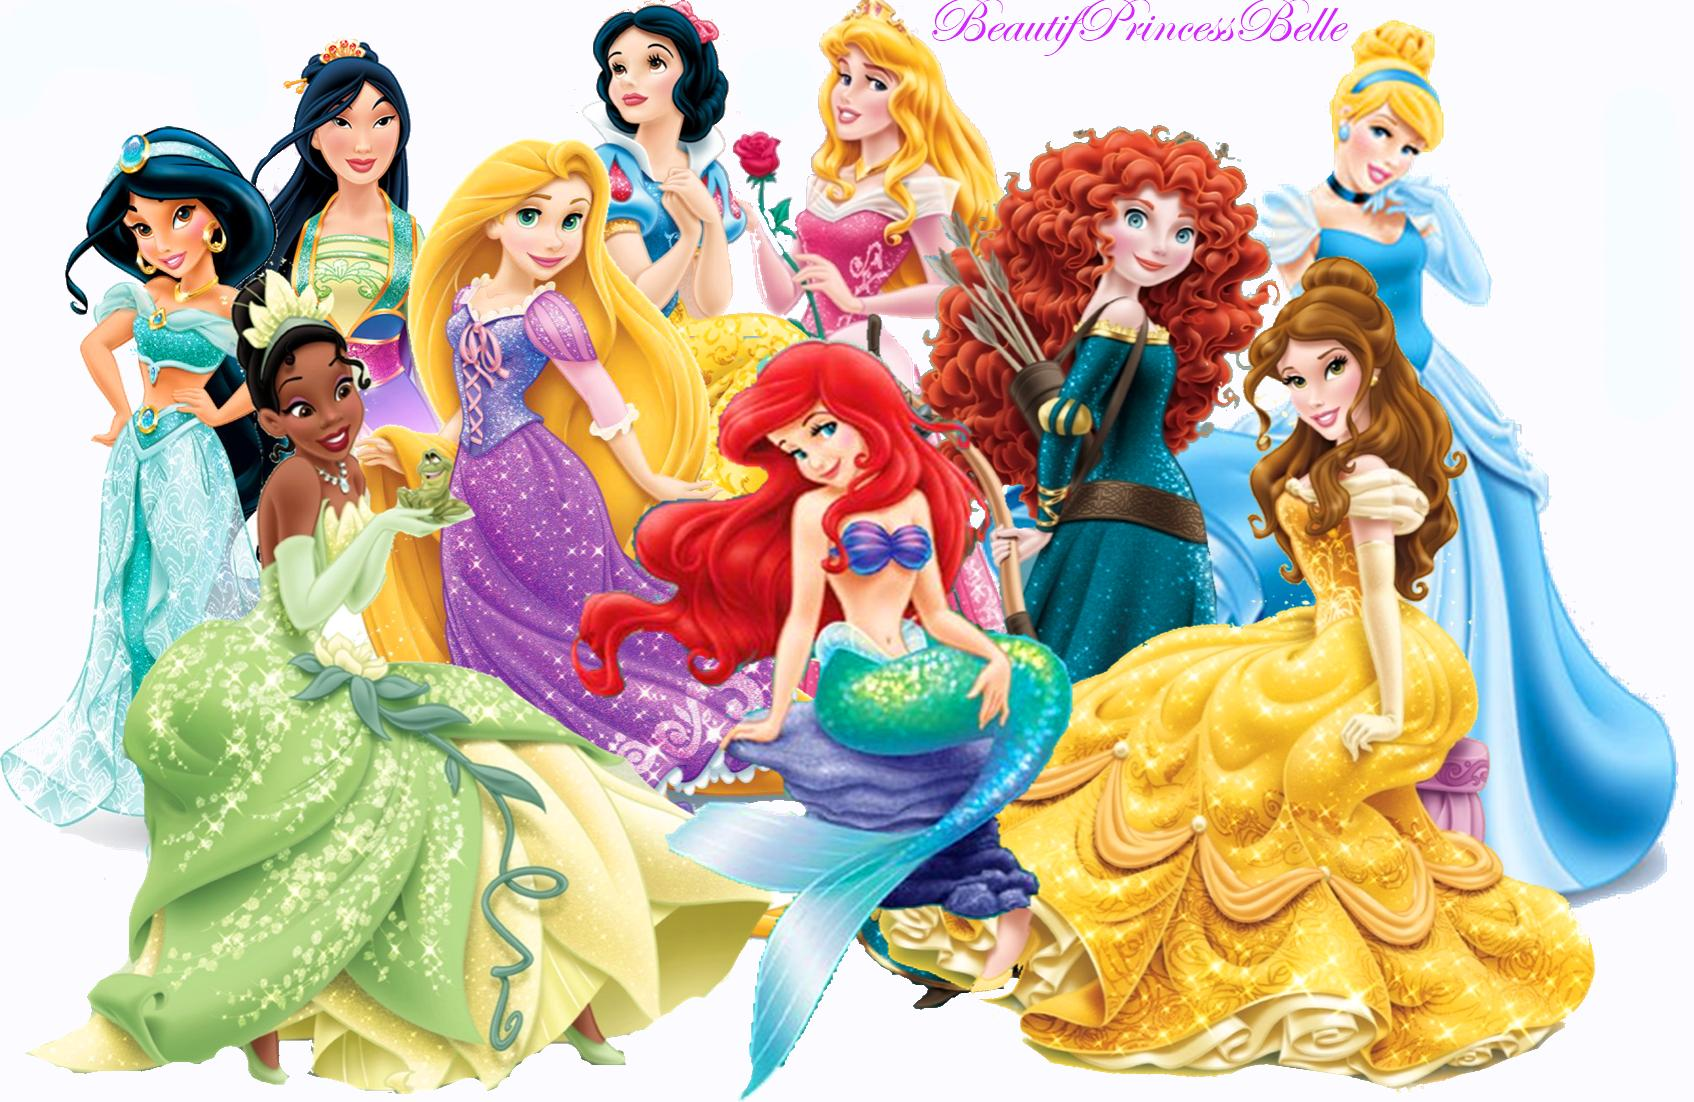 Ariel Disney Princess Hd Wallpaper Free Download 1694x1102